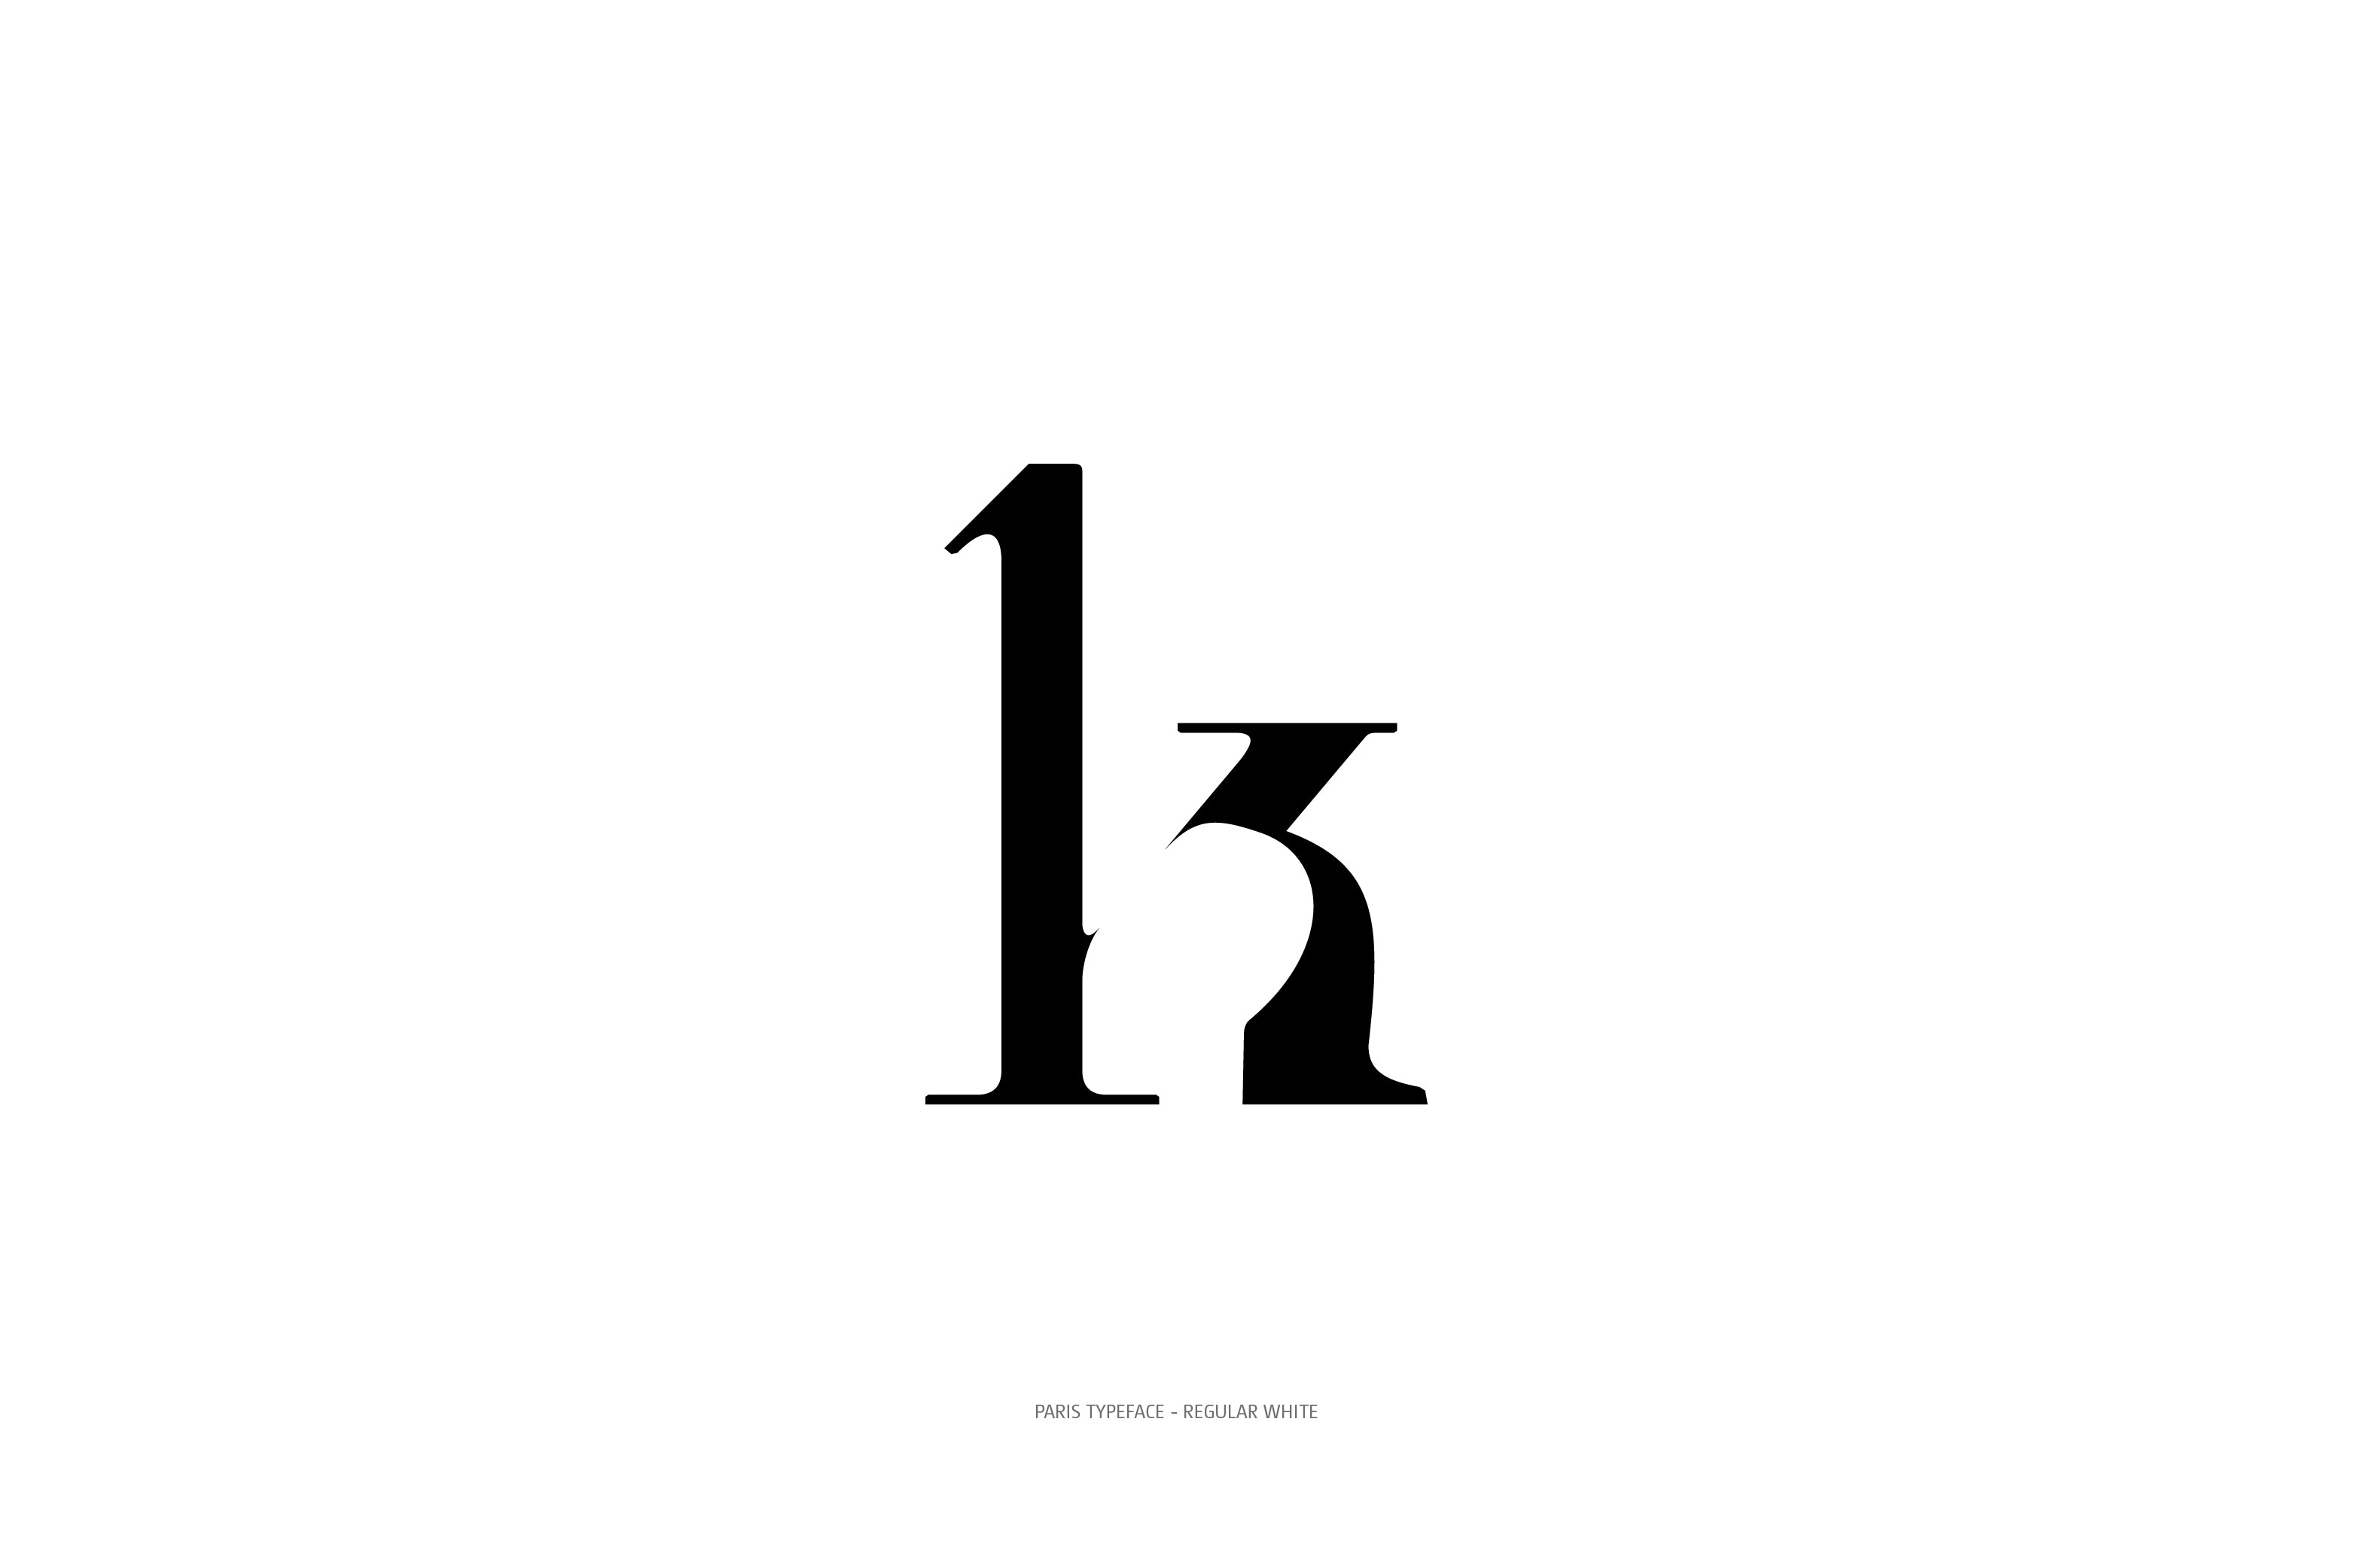 Paris Typeface Regular White k